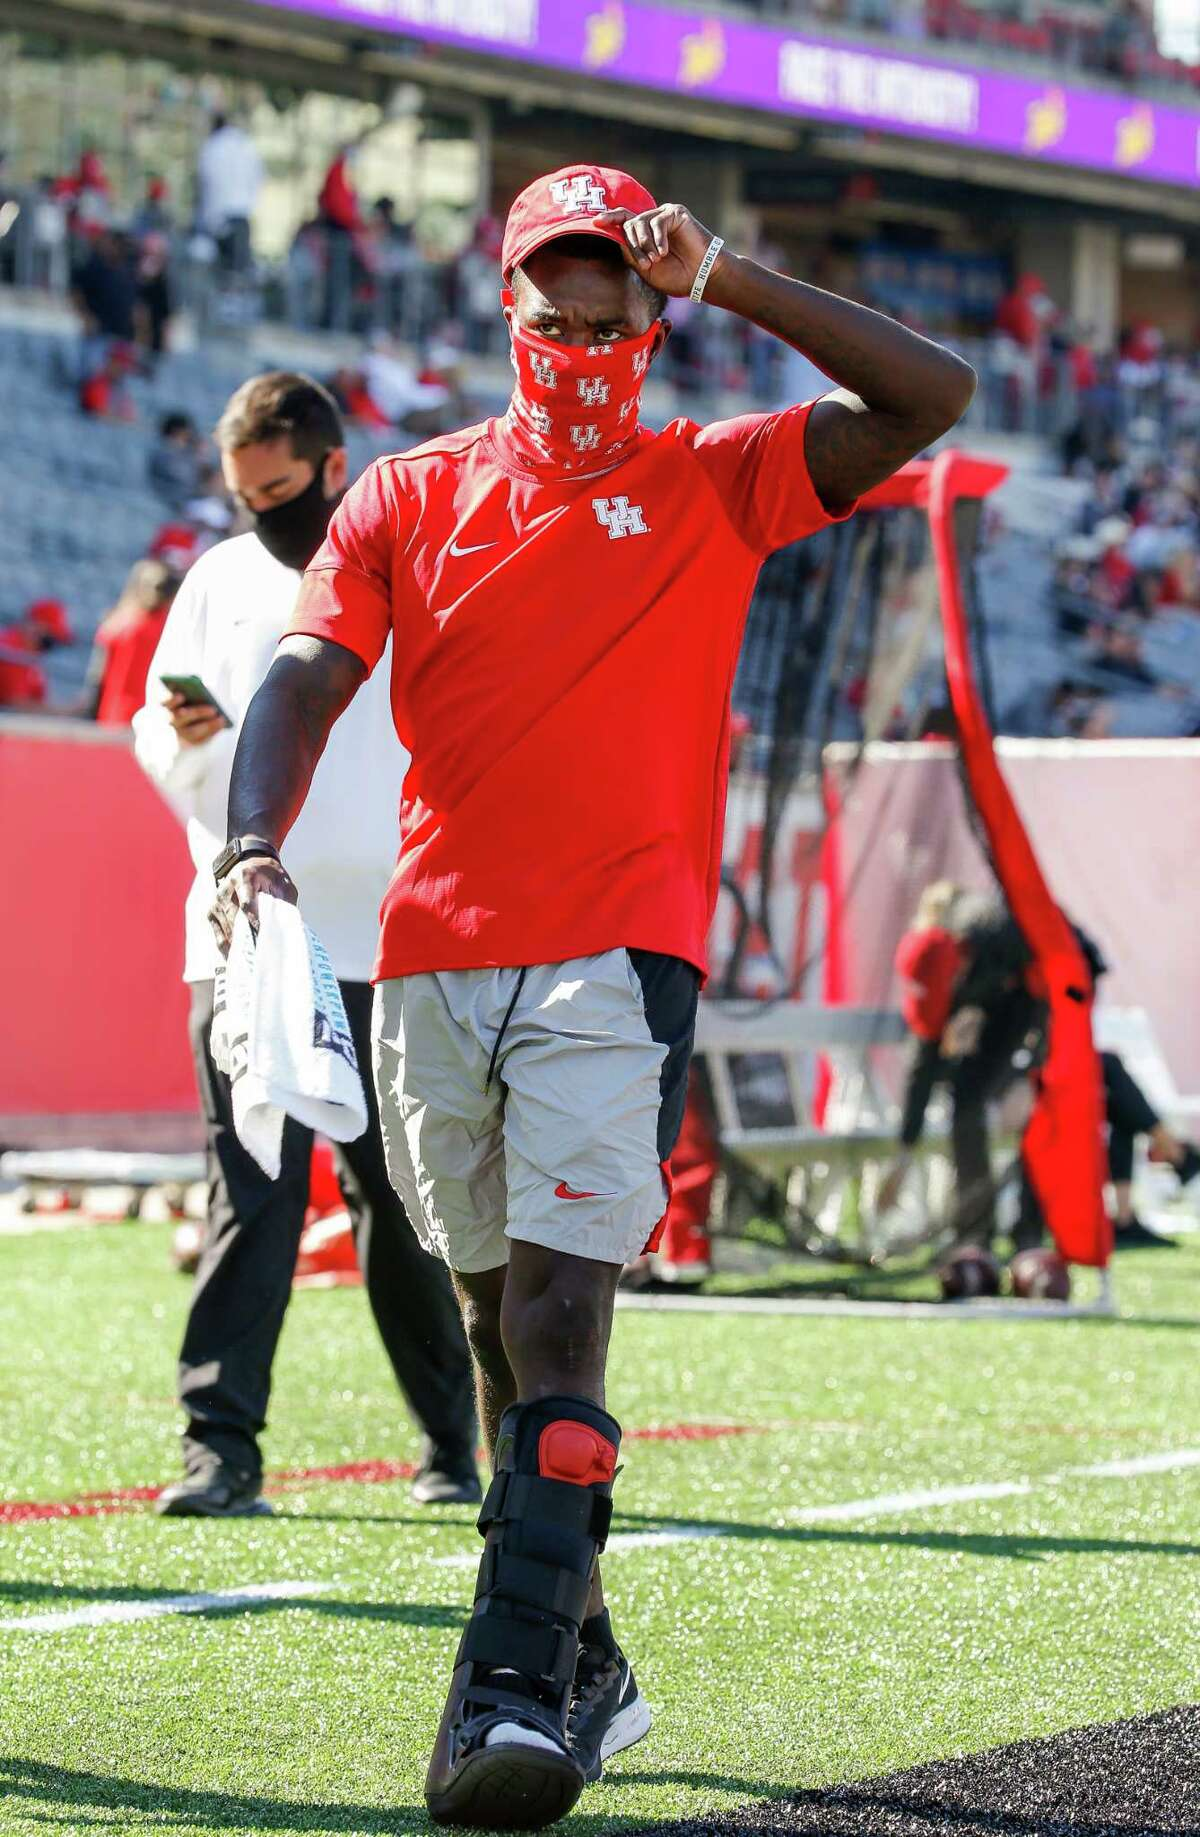 Houston Cougars wide receiver Marquez Stevenson (5) seen wearing a boot after injuring his foot in the first half of an NCAA football game against the UCF Knights at TDECU Stadium on Saturday, Oct. 31, 2020, in Houston.